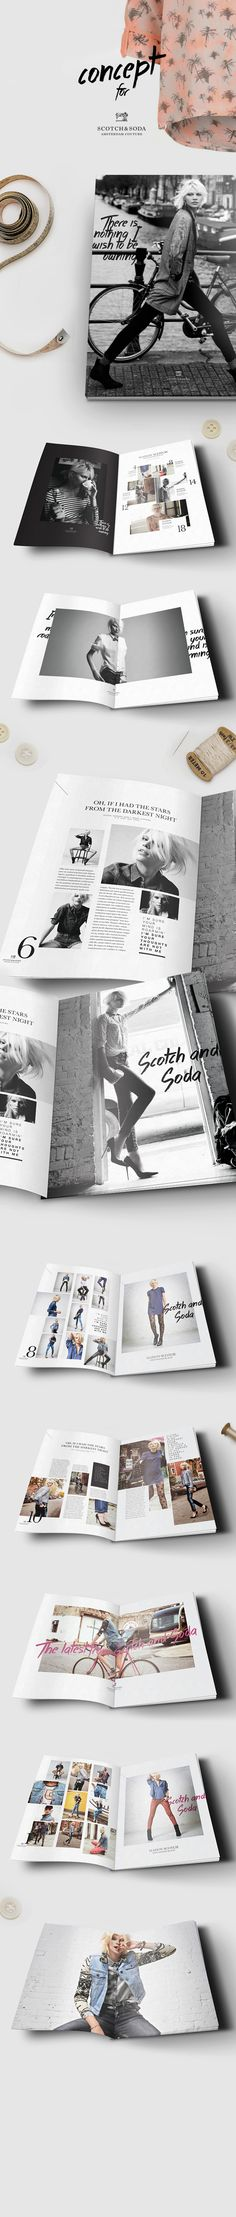 Scotch & Soda журнал / Lookbook концепция на редакционной дизайна Подается